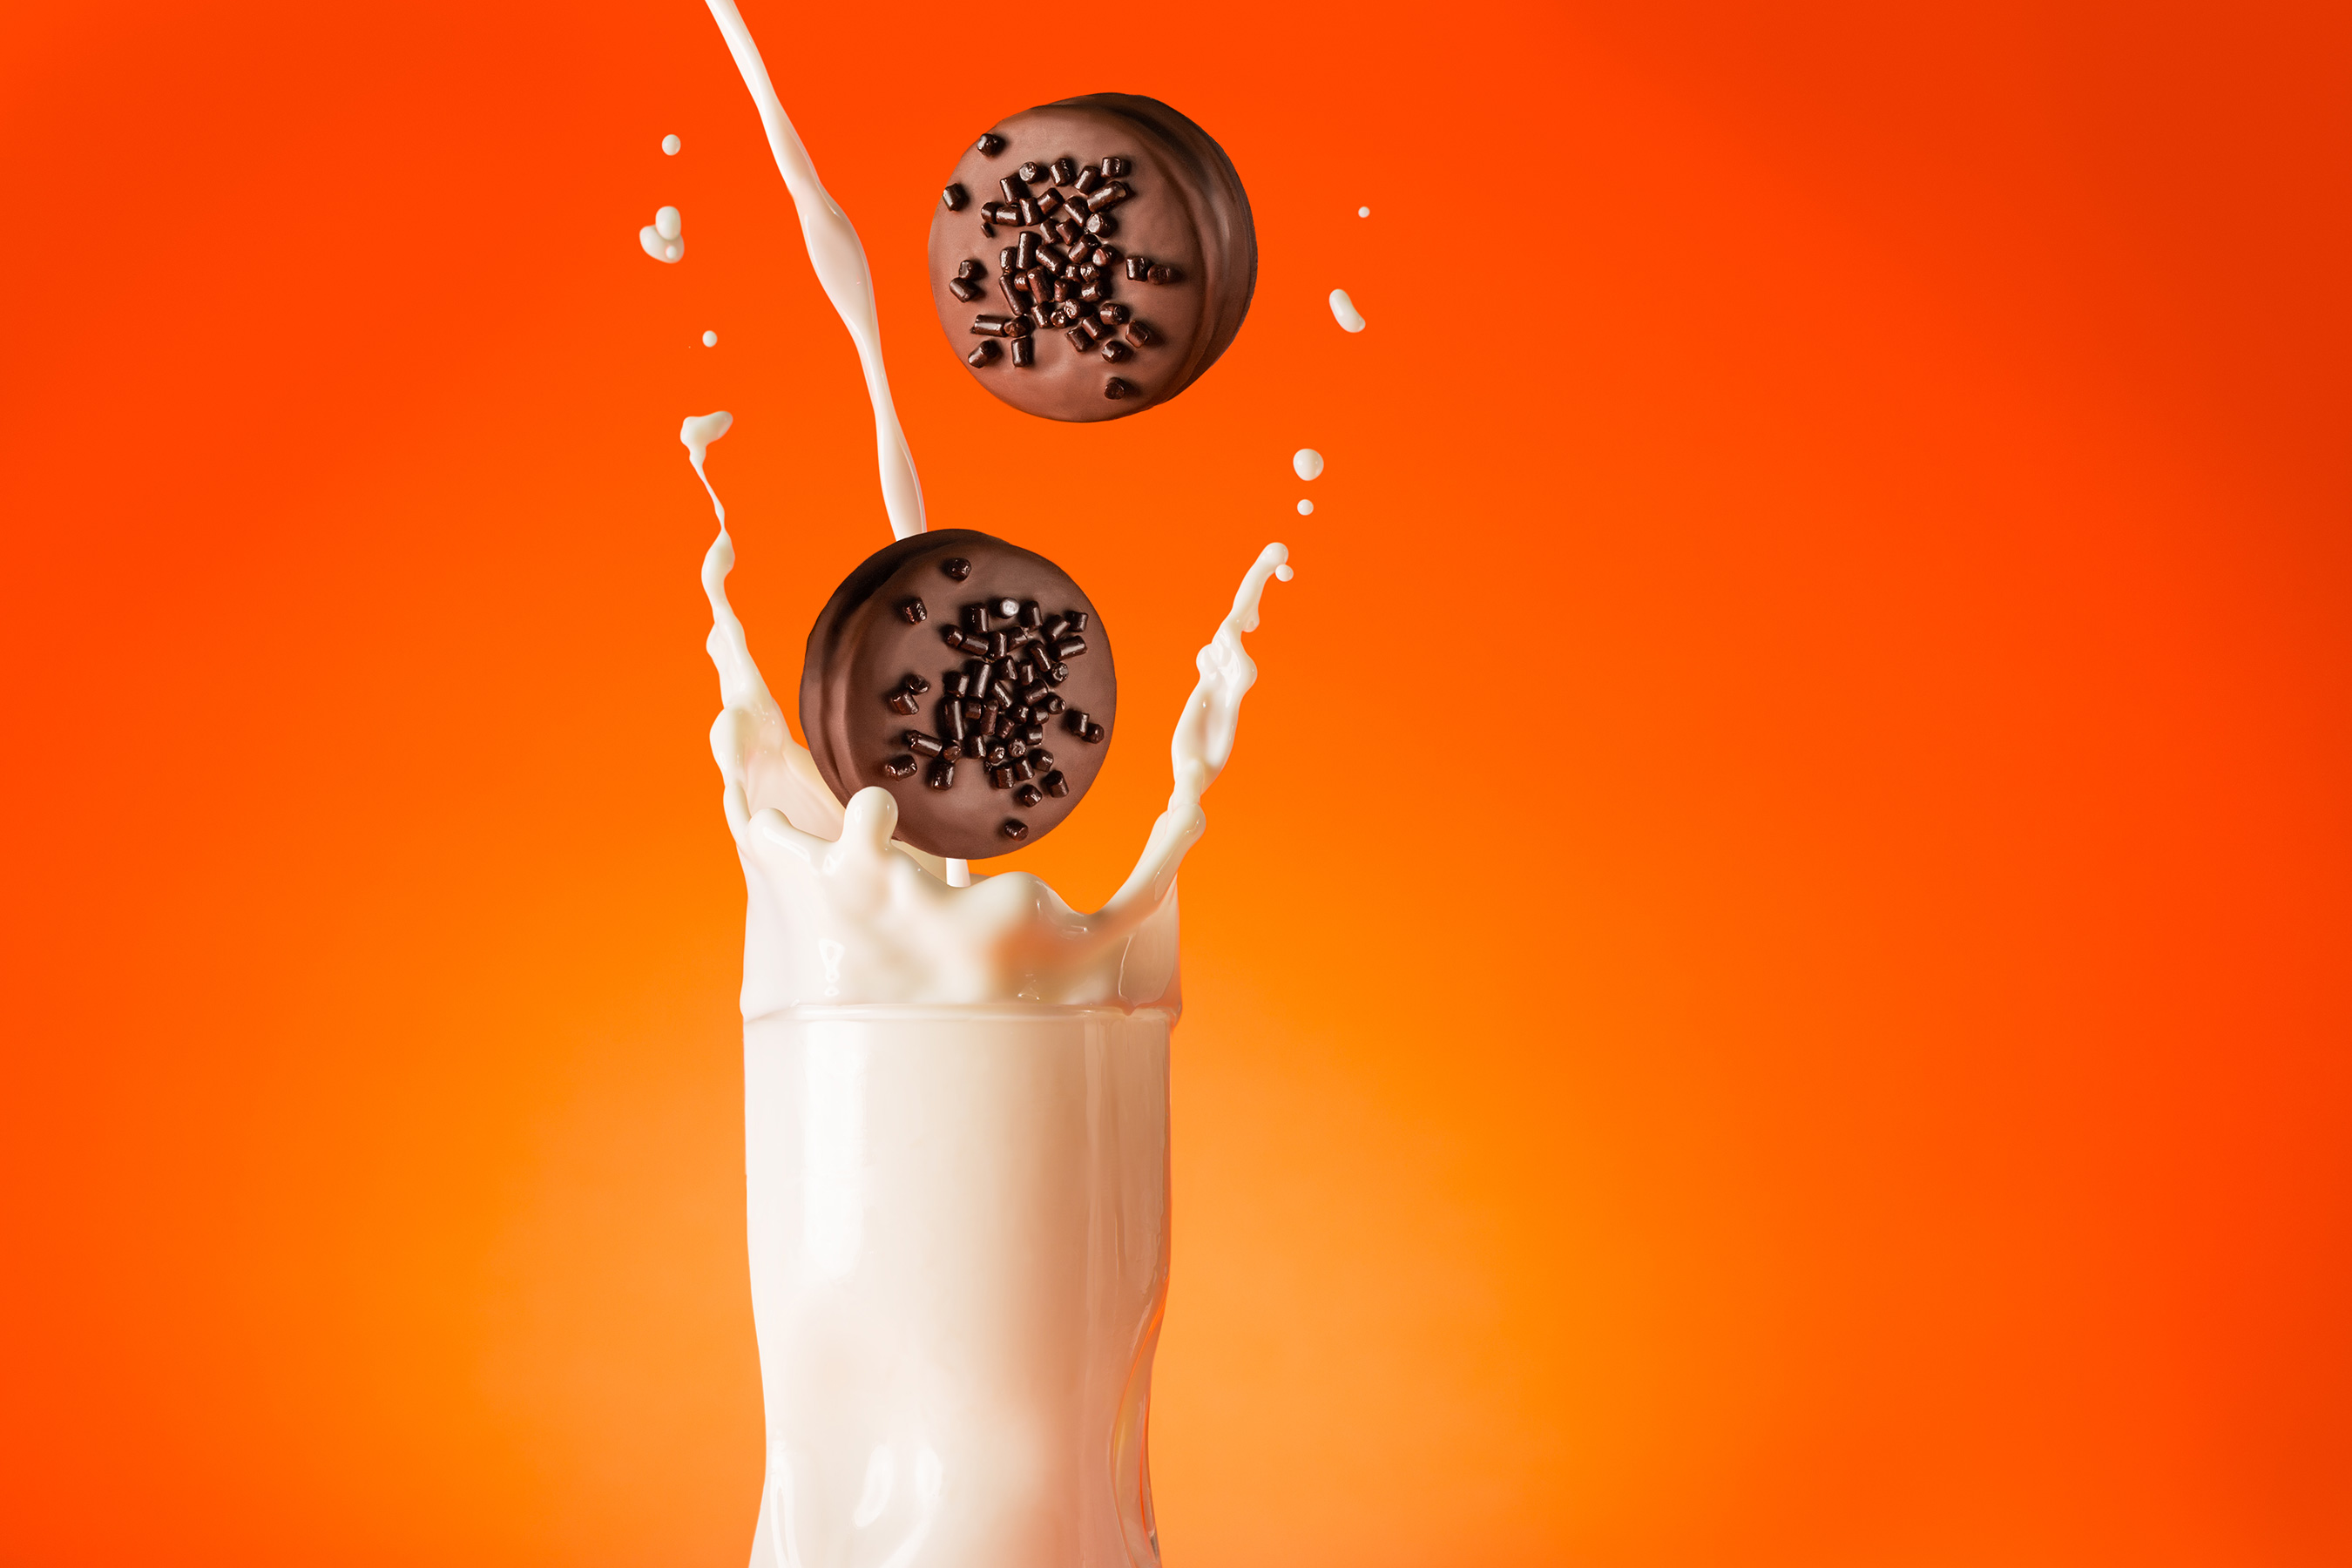 Marinela Gansito cookies dropping into splashing milk w orange background